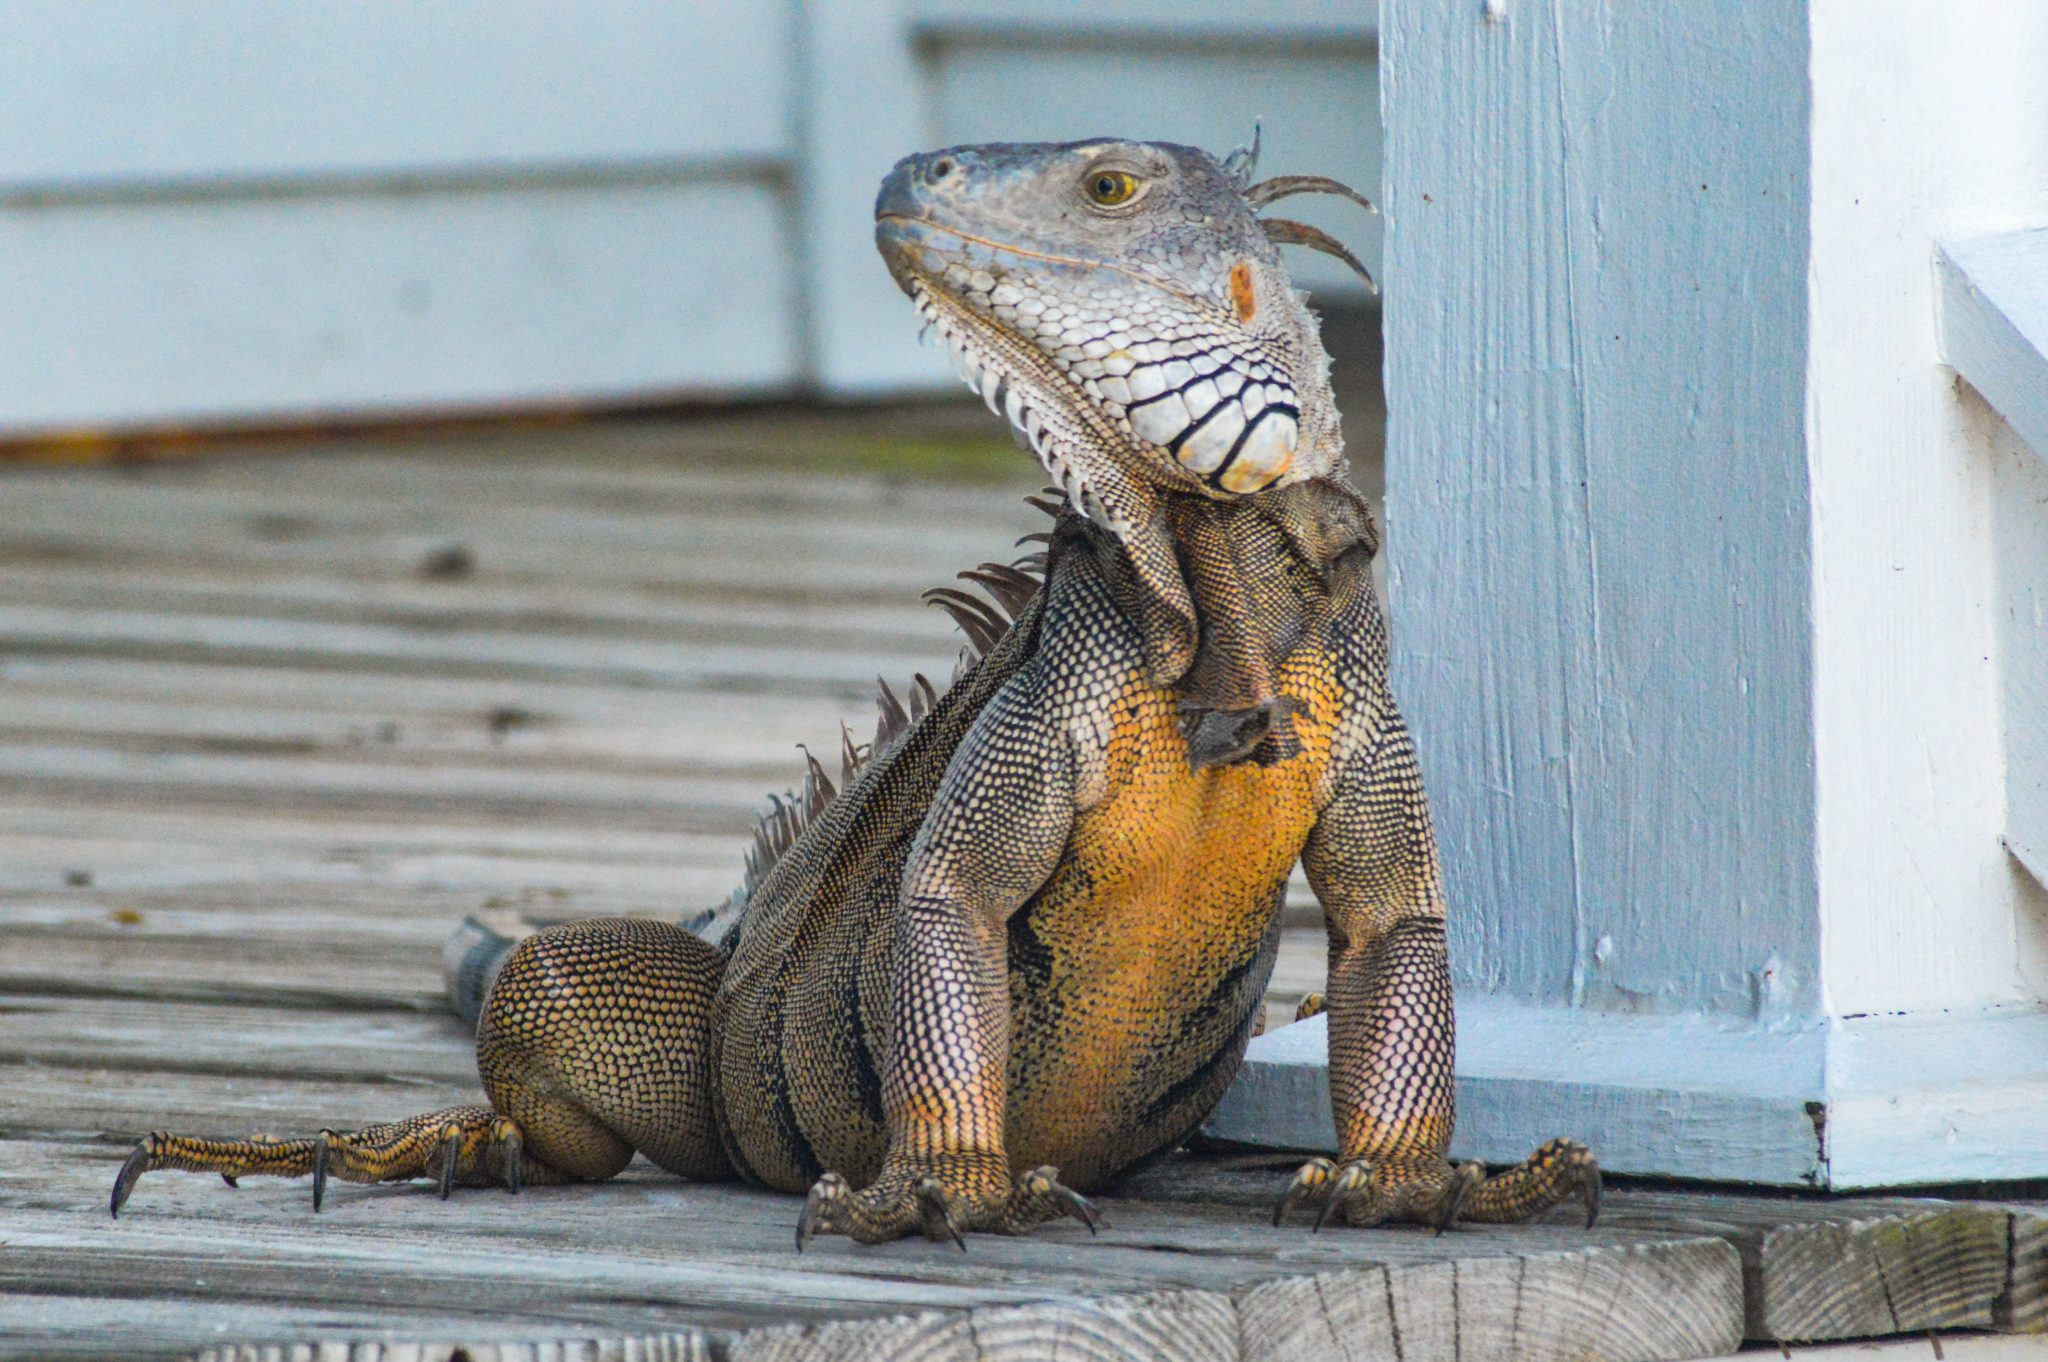 lizard sitting on owner's porch